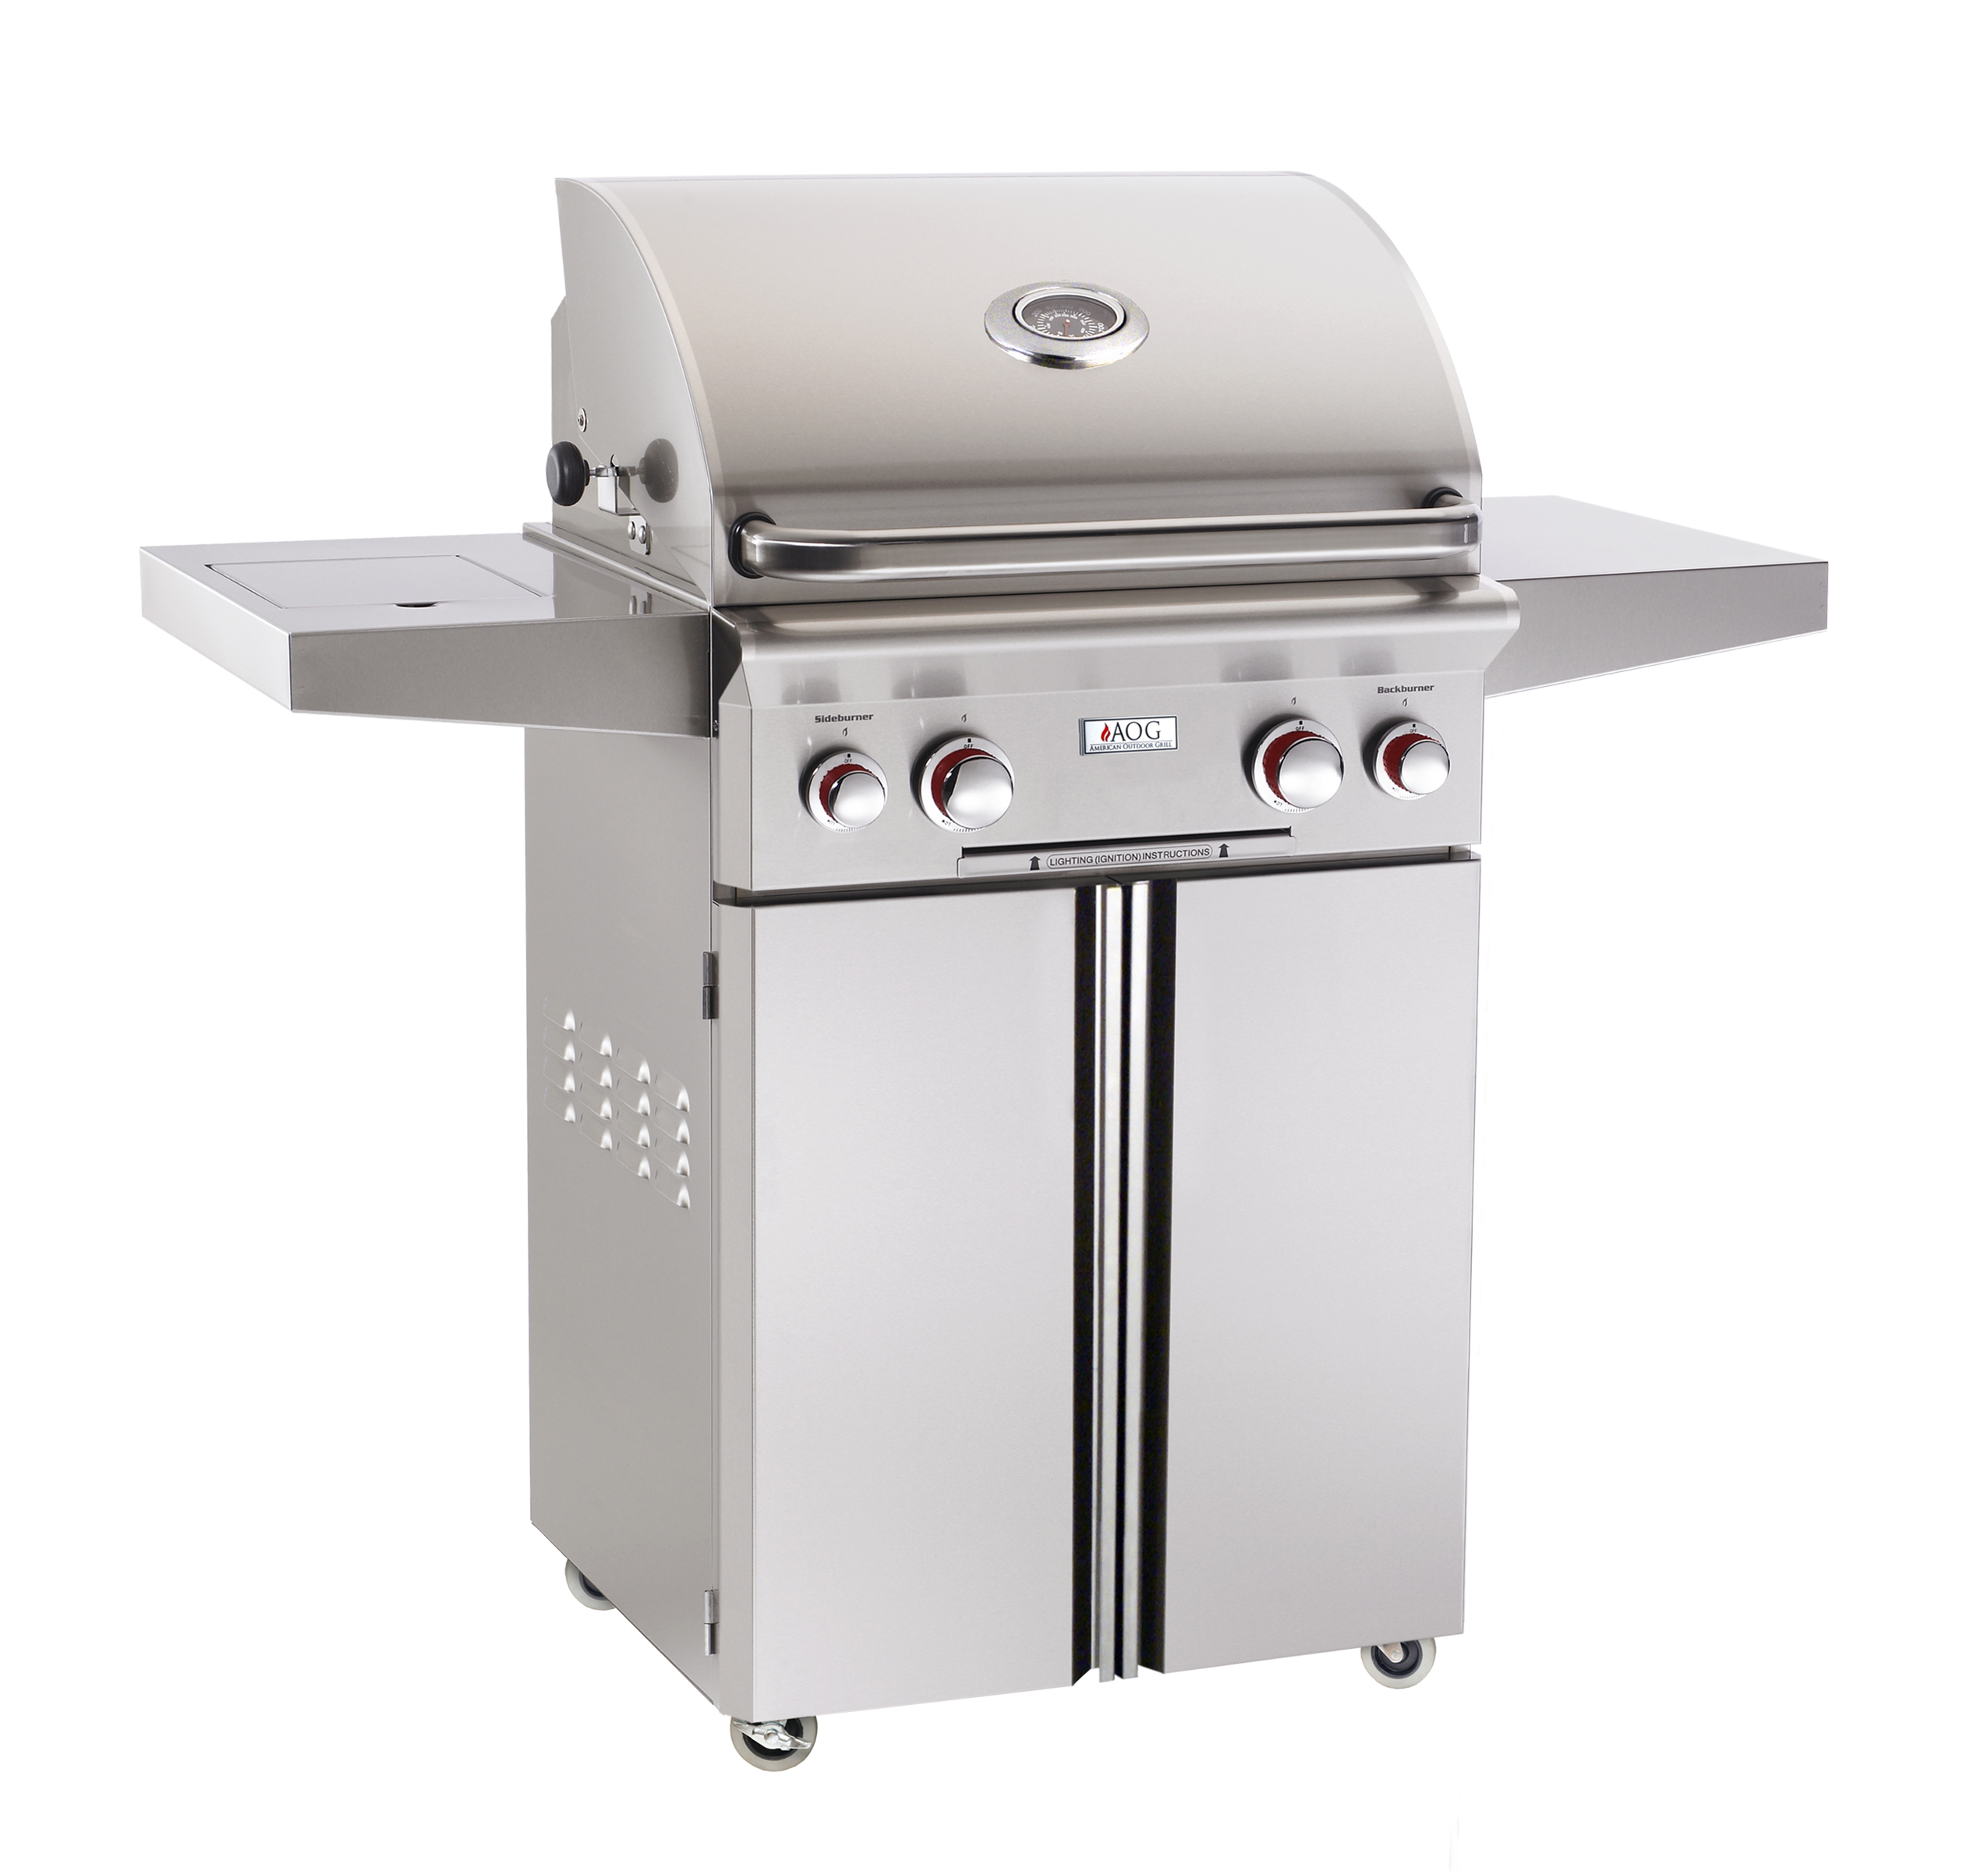 aog-24pct-24-t-series-portable-grill-closed.jpg